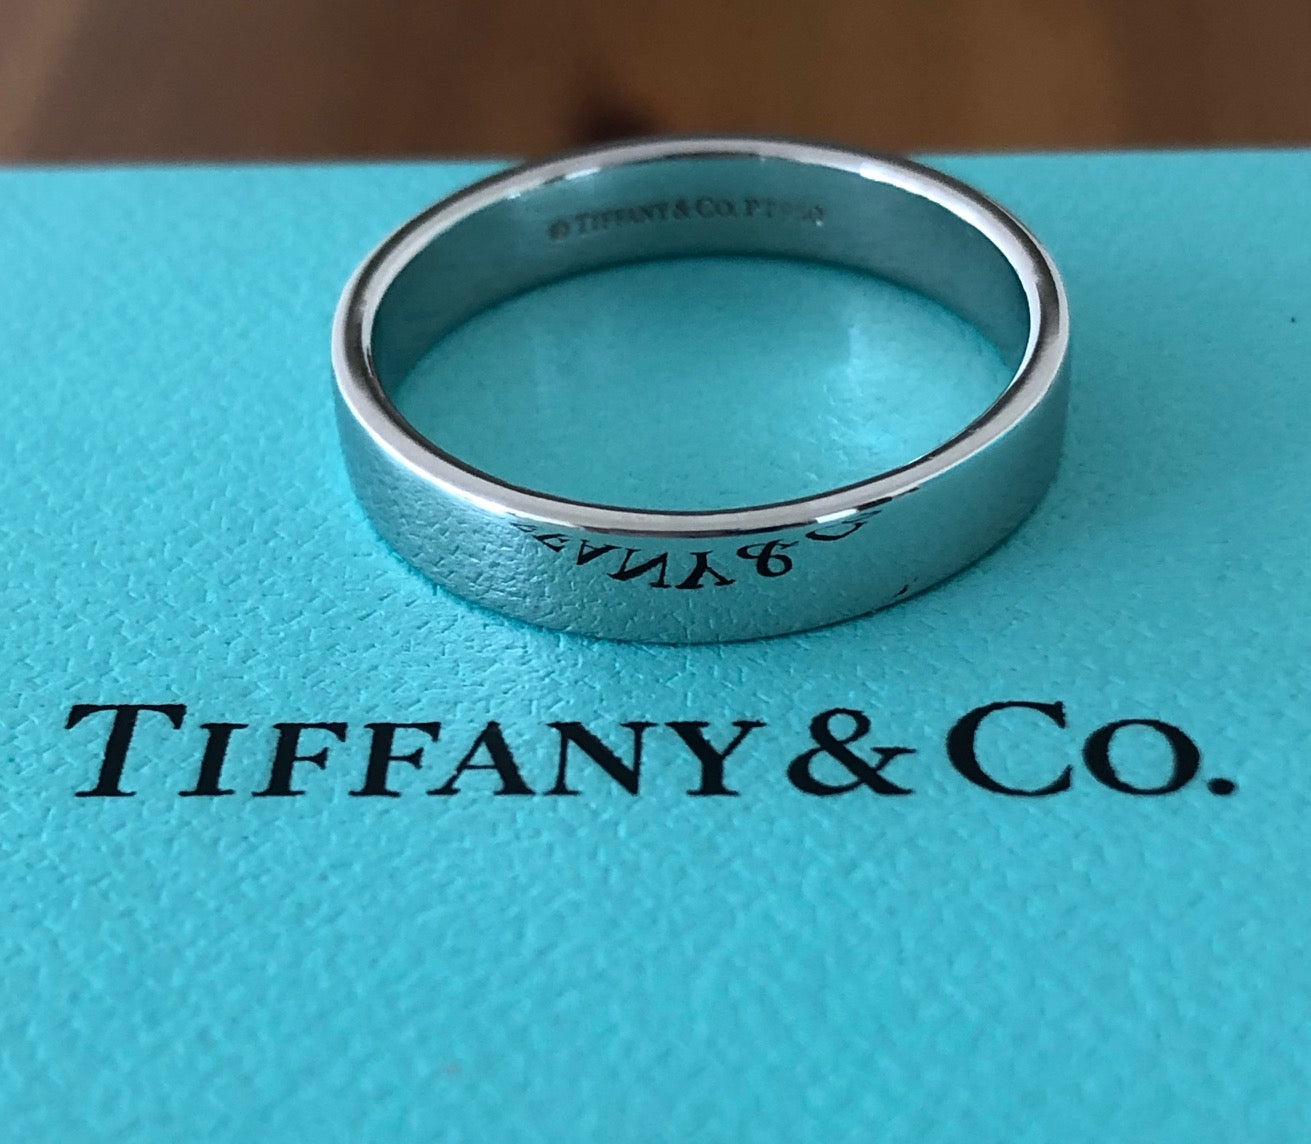 Tiffany & Co. Mens Platinum Wedding Band Ring 4mm Wide Size 9.25 RRP $2550